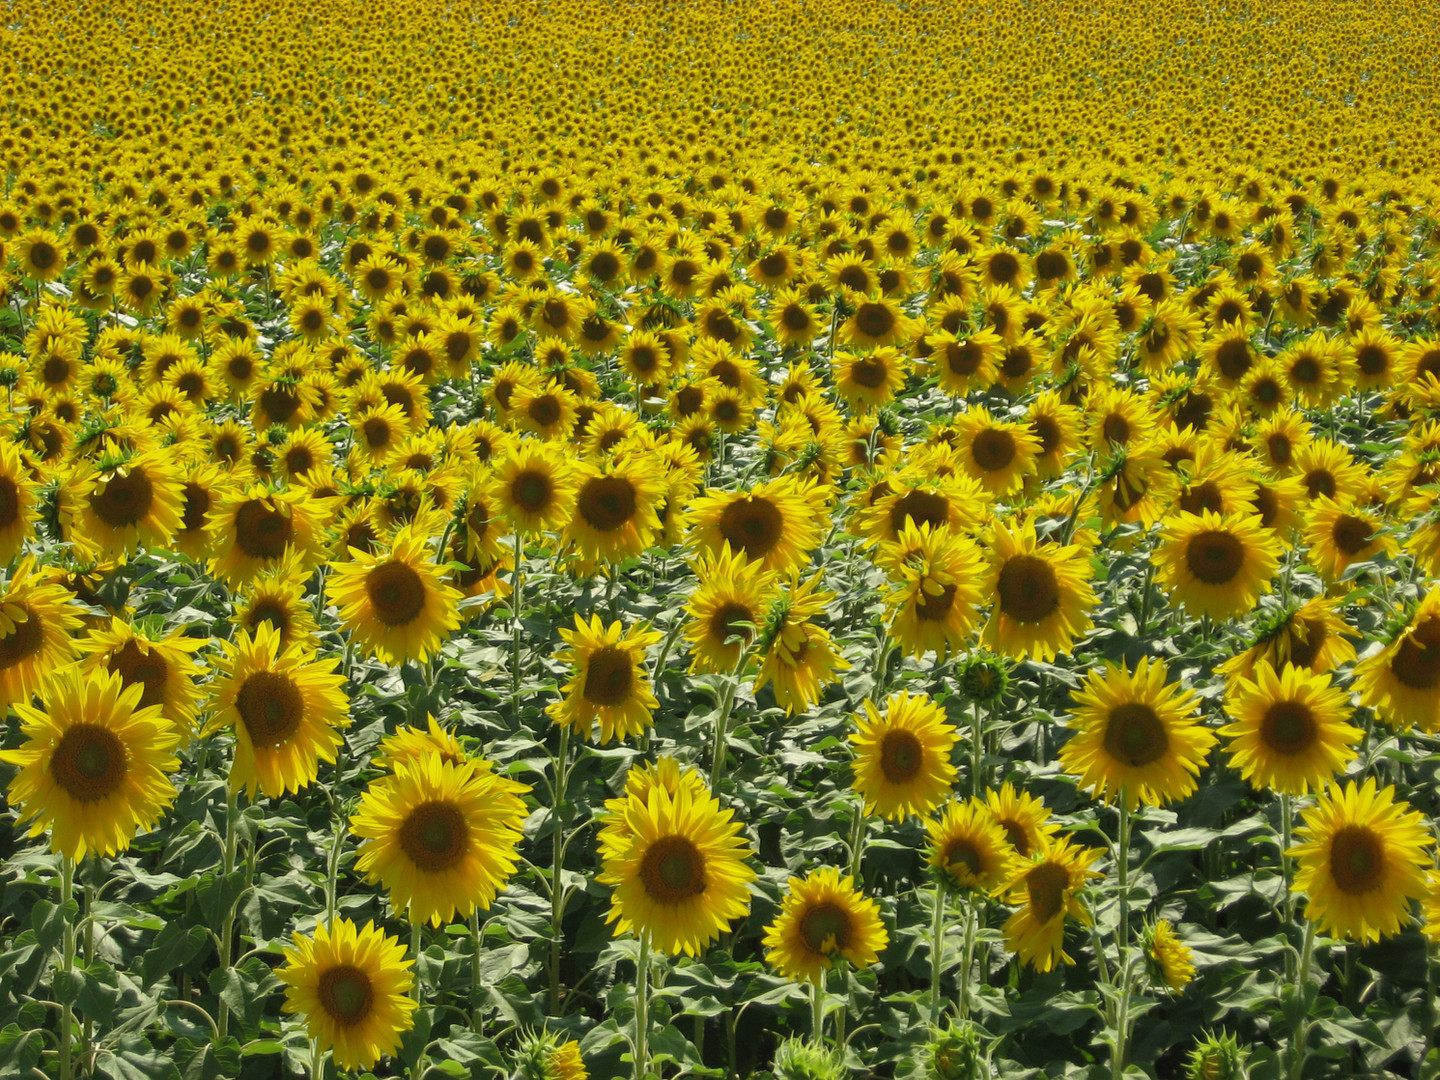 Sunflowers all over